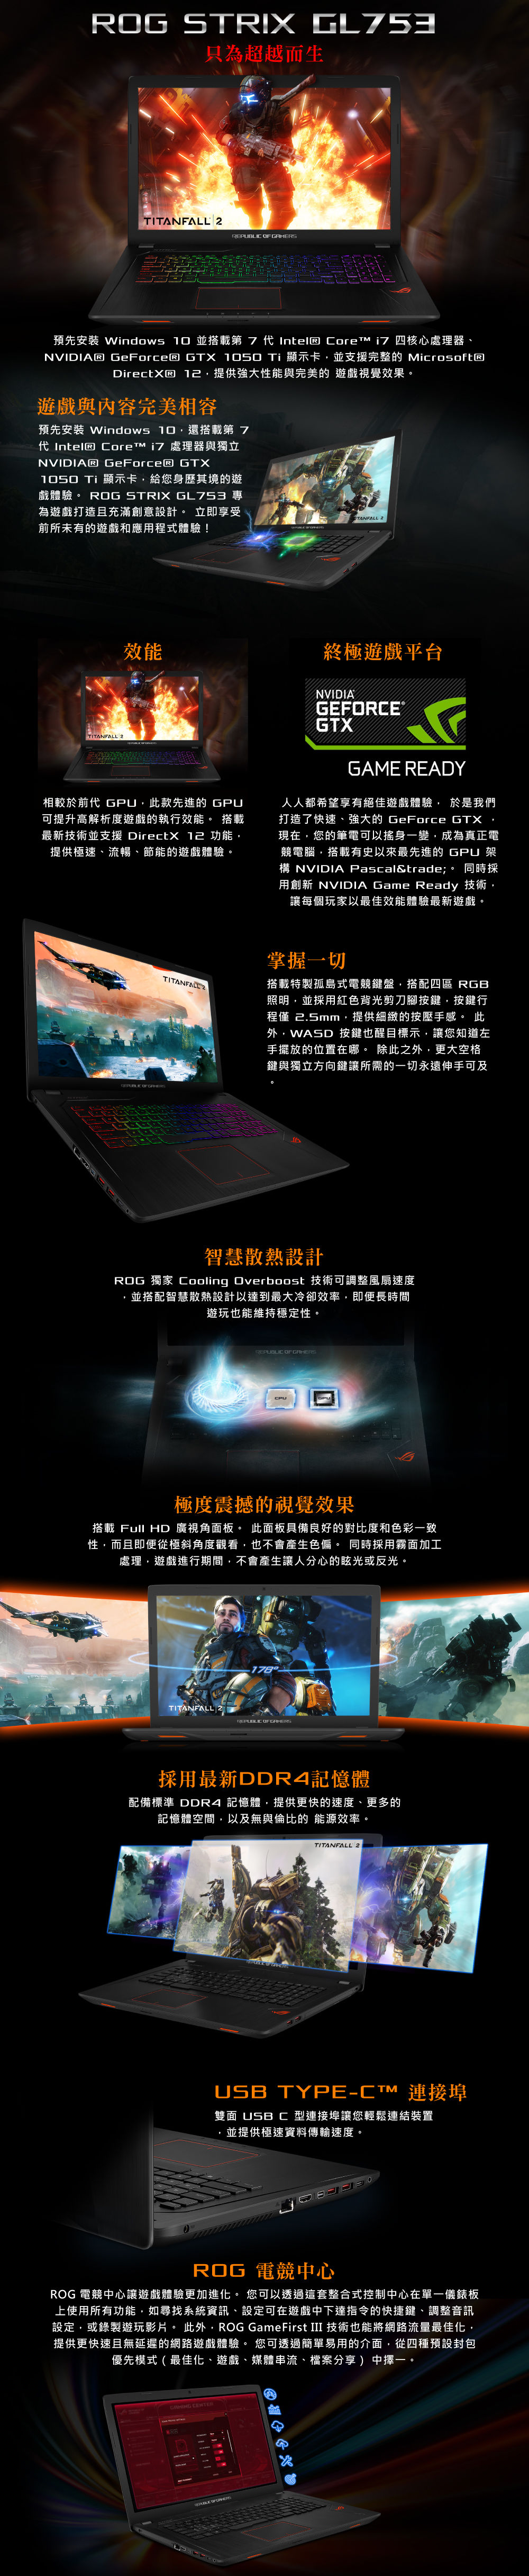 ASUS 華碩 GL753VE-0021B7700HQ i7-7700HQ 強悍電競筆電 華碩 ASUS GL753VE-0021B7700HQ i7-7700HQ GL753VE 0021B7700HQ GL753VE 0021B7700HQ 電競筆電